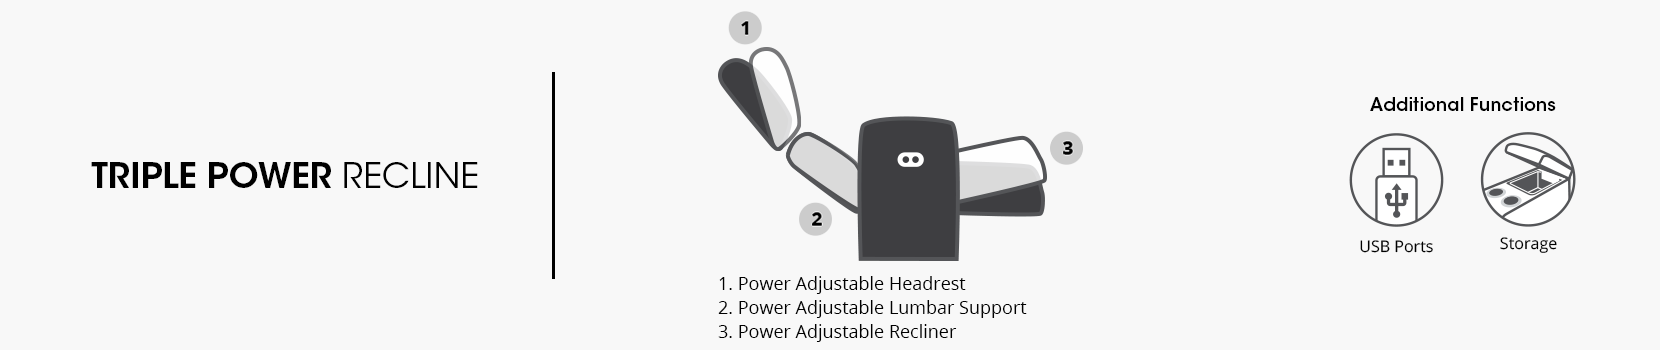 triple power recline. 1. power adjustable headrest. 2. power adjustable lumbar support. 3. power adjustable recliner. additional functions. USB ports. storage.